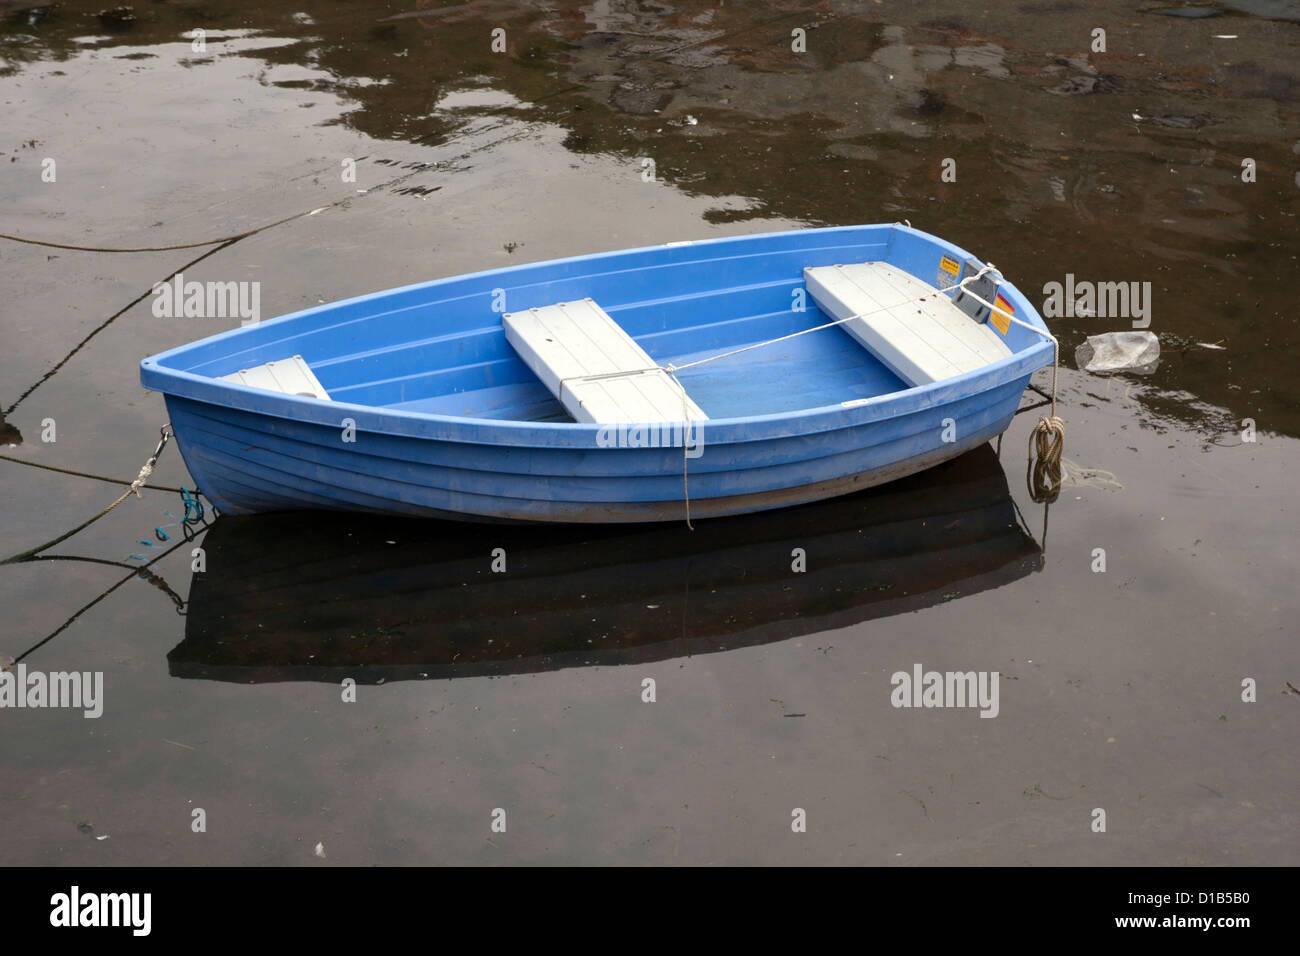 Blue boat floating on stagnant water Stock Photo